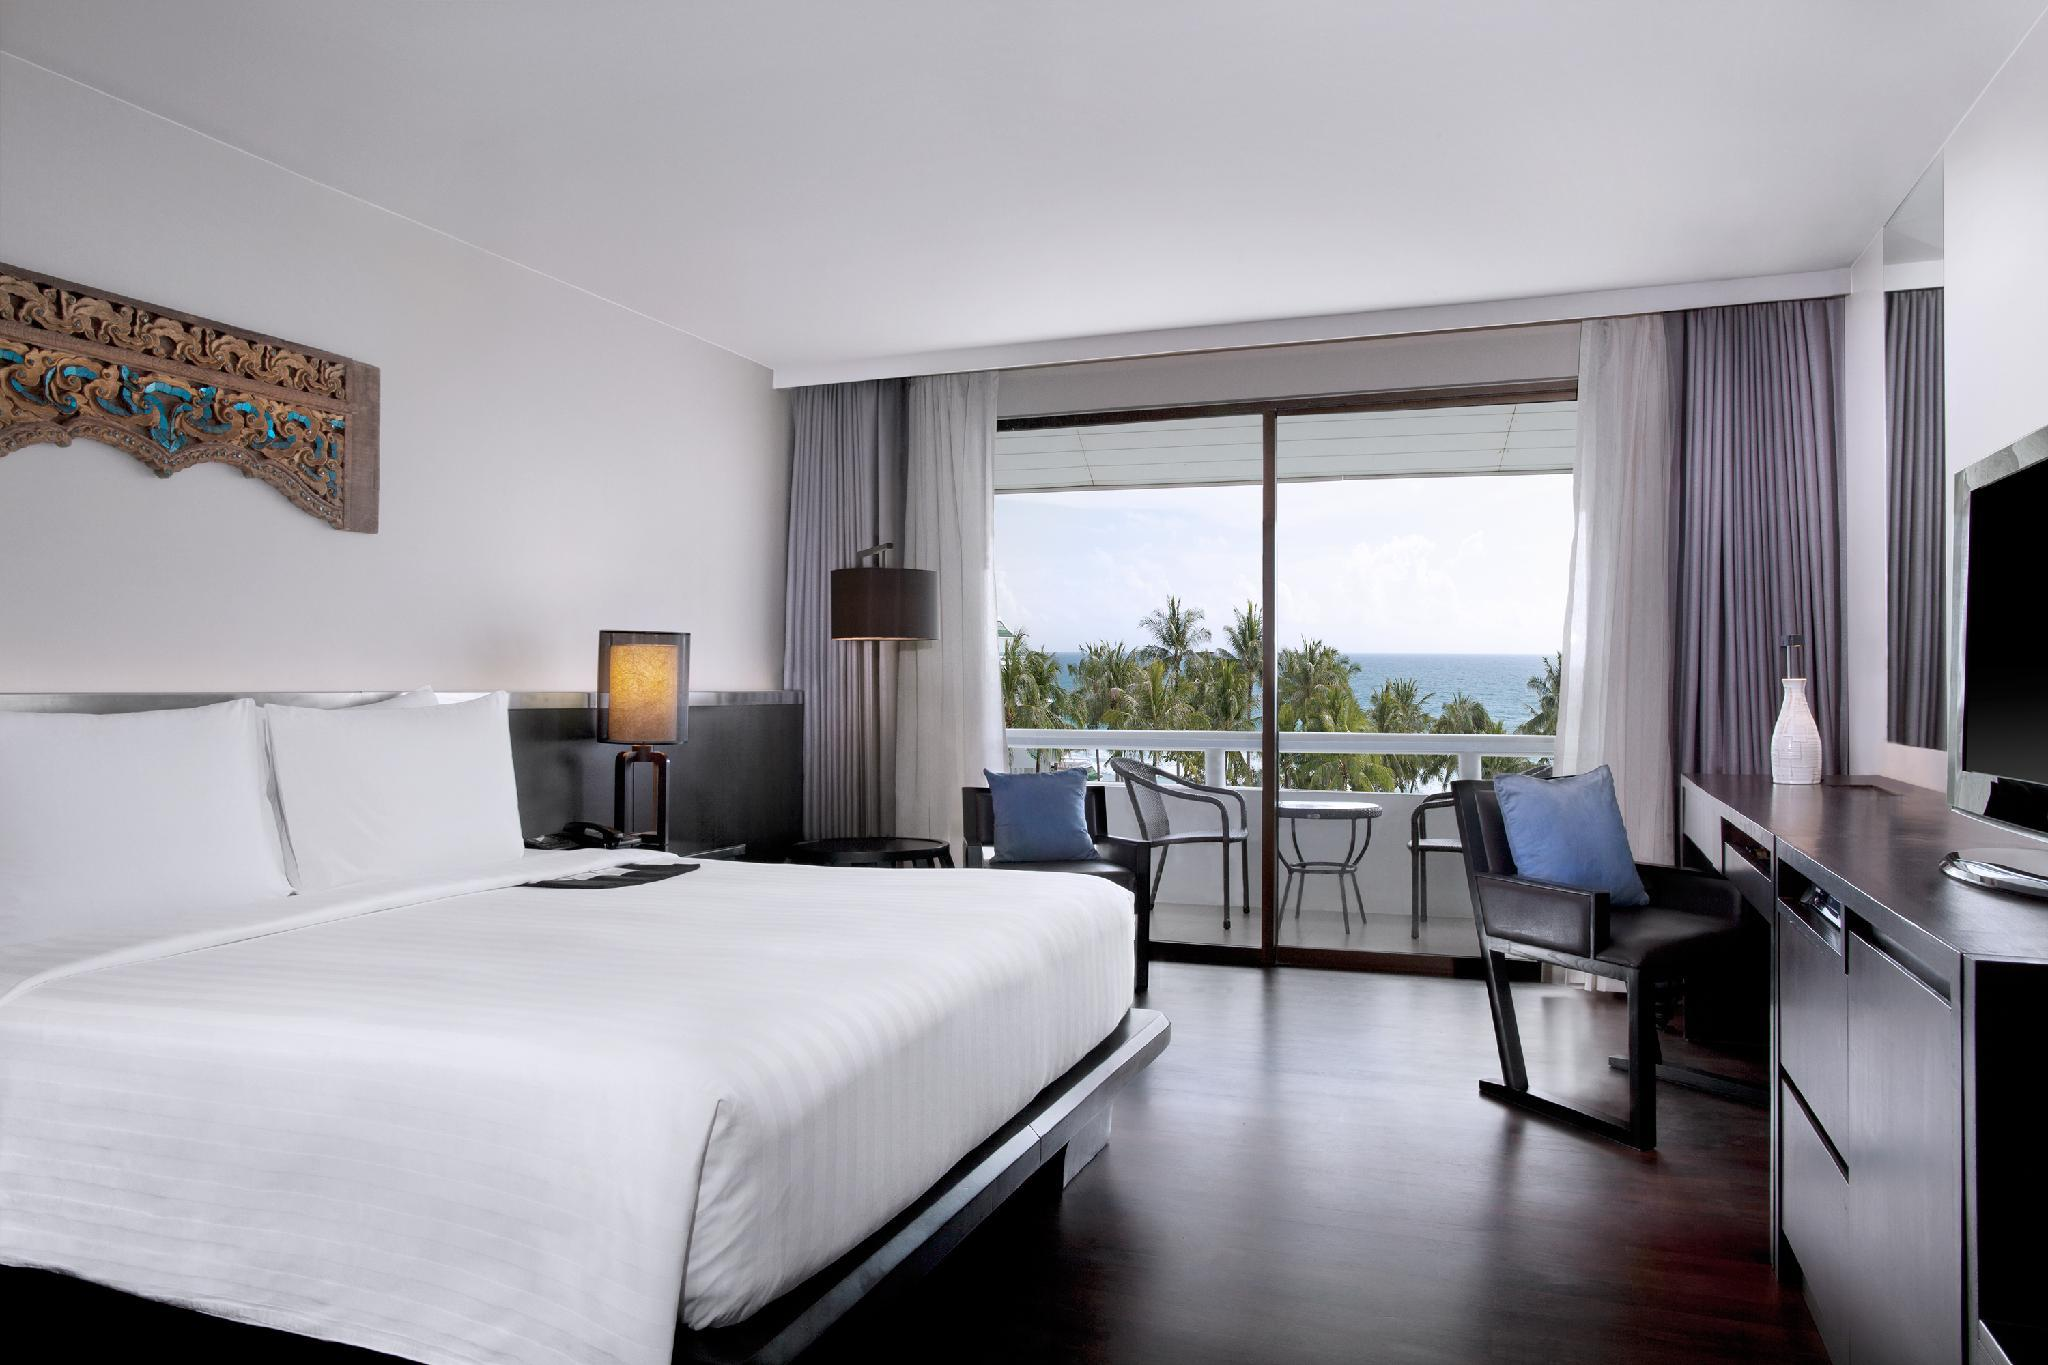 Deluxe Ocean View, Guest room, 1 King, Balcony